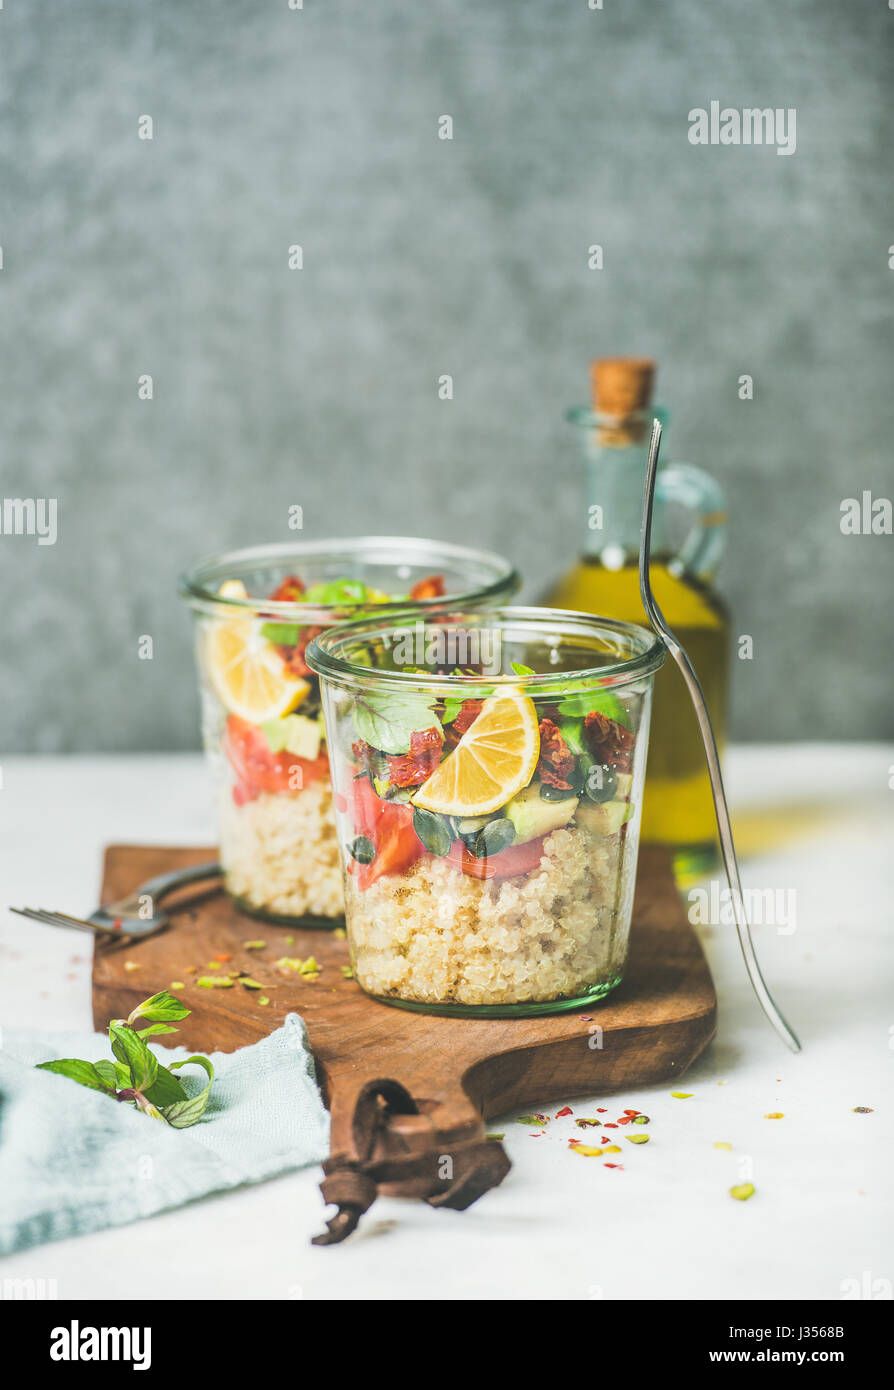 Salad with quionoa, avocado, dried tomatoes, copy space - Stock Image